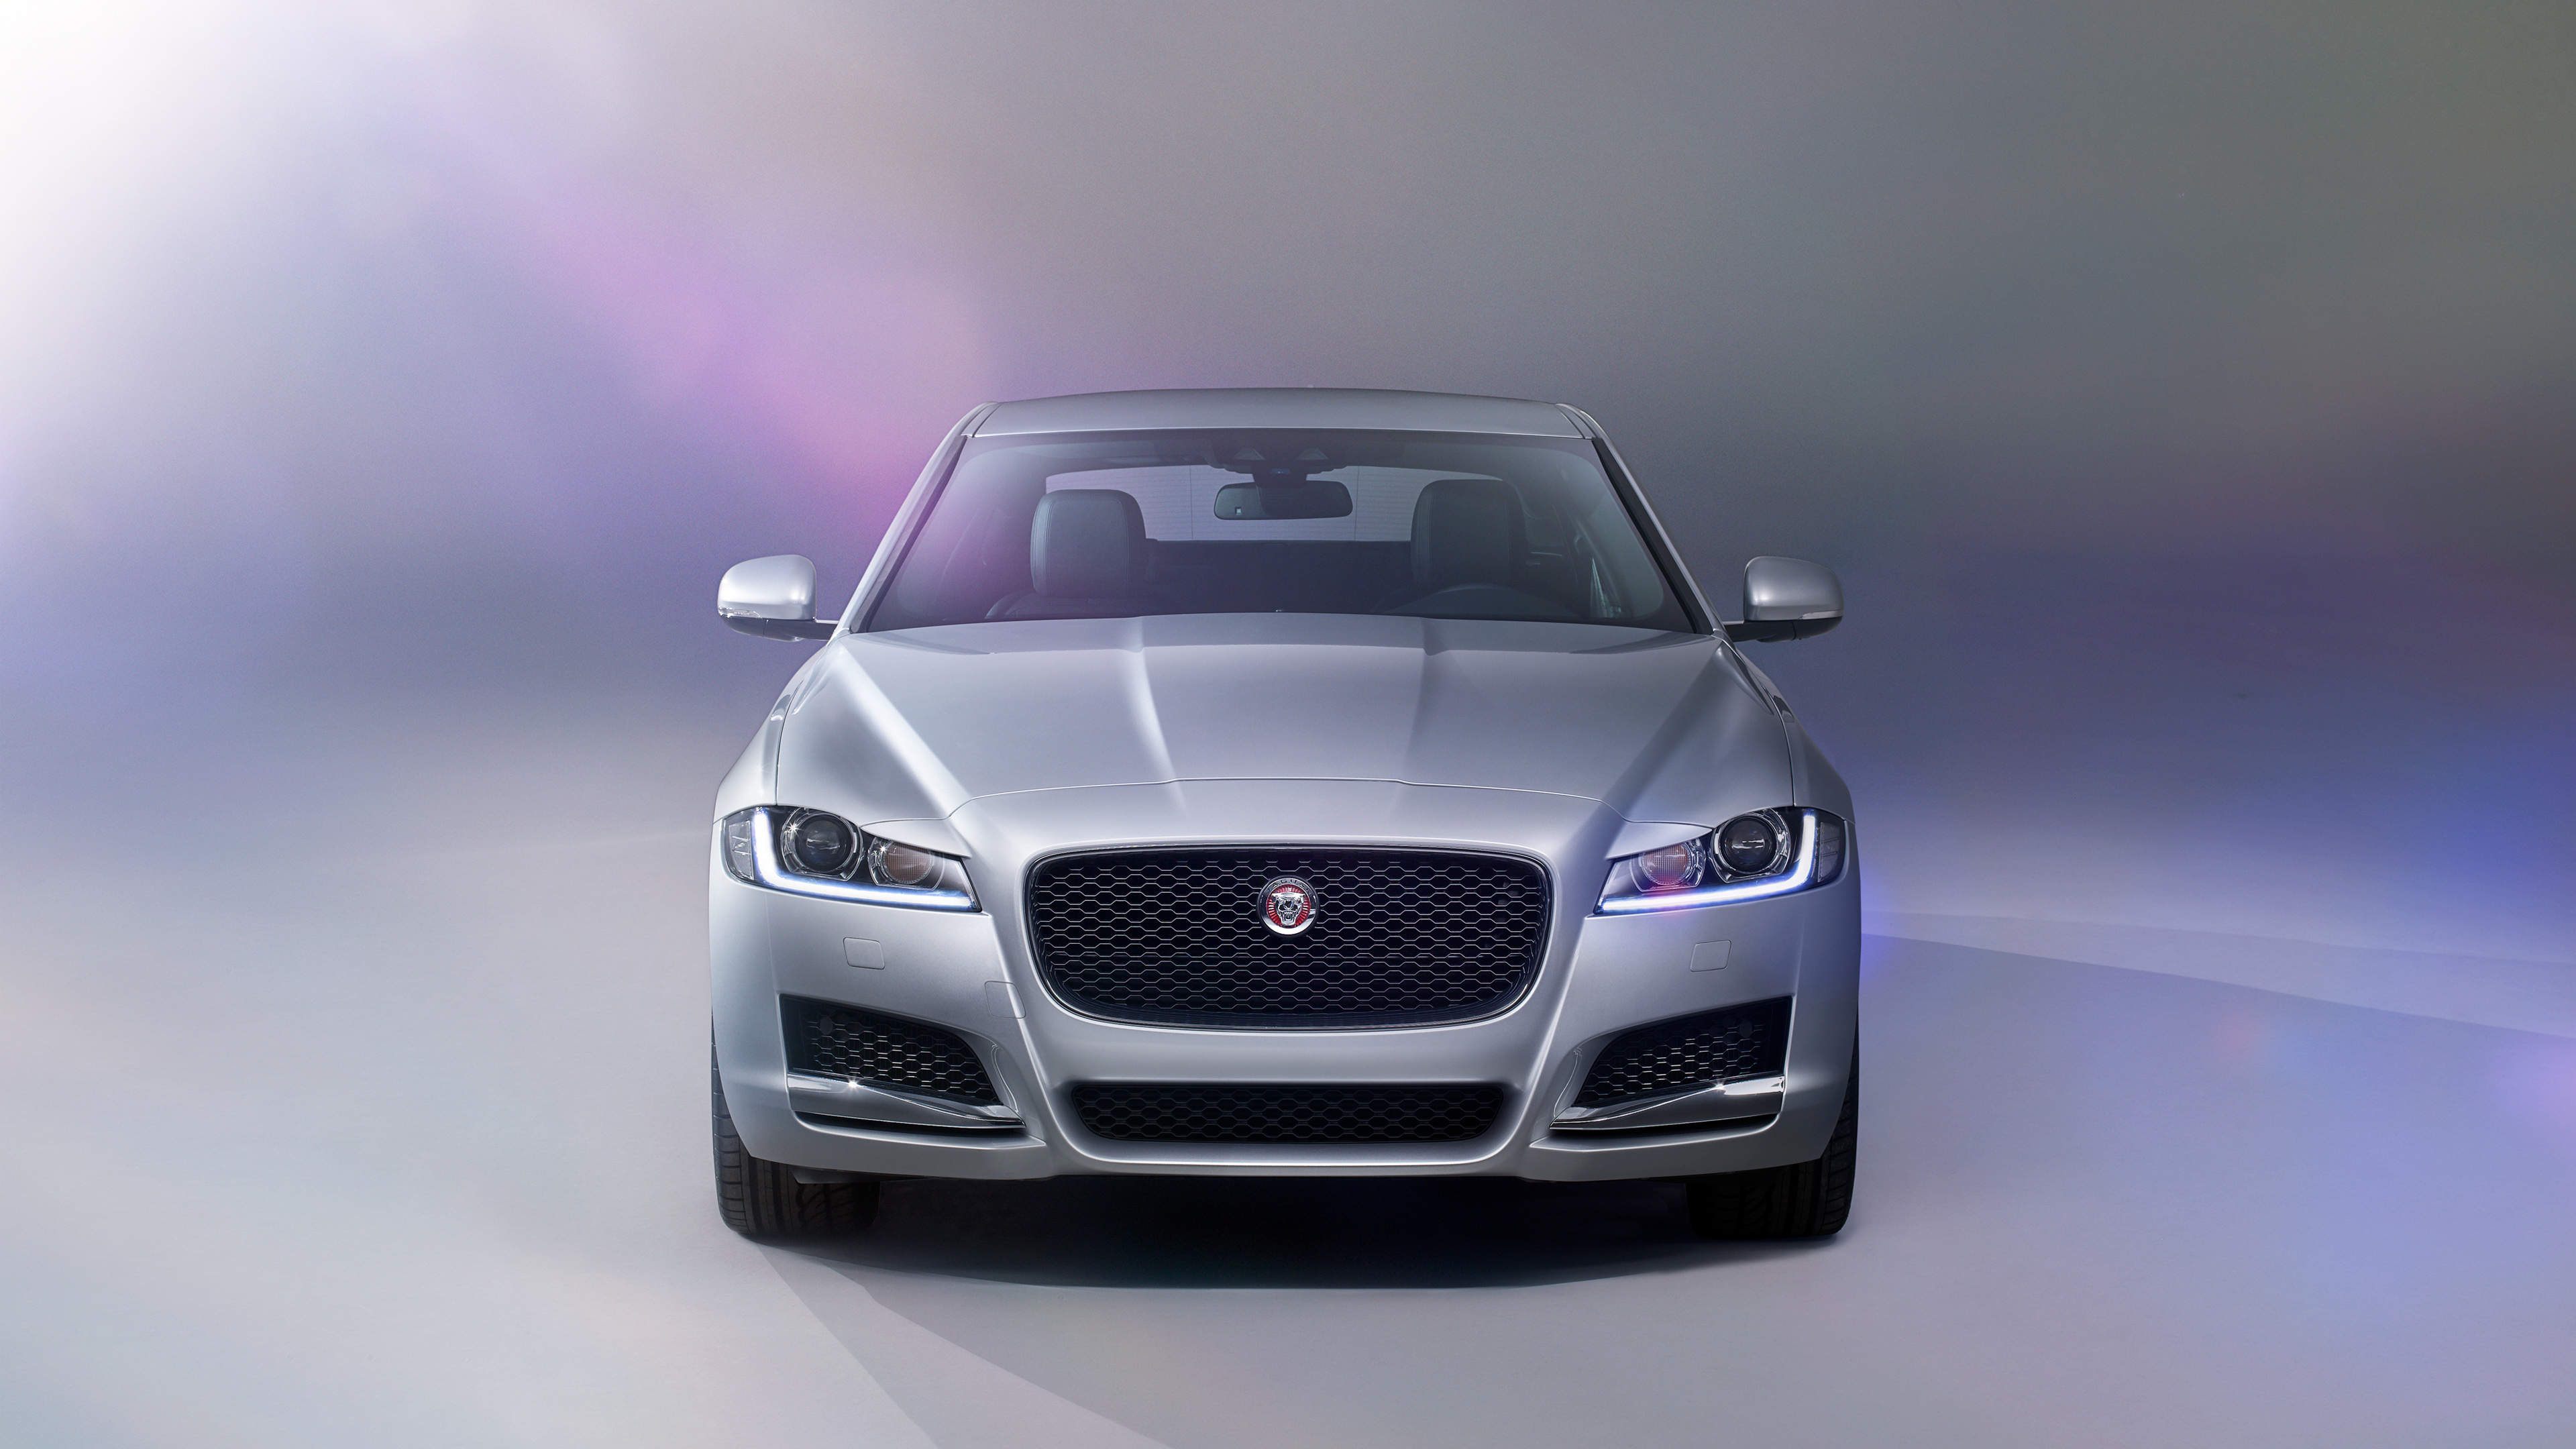 Tags: Jaguar 2015 Prestige